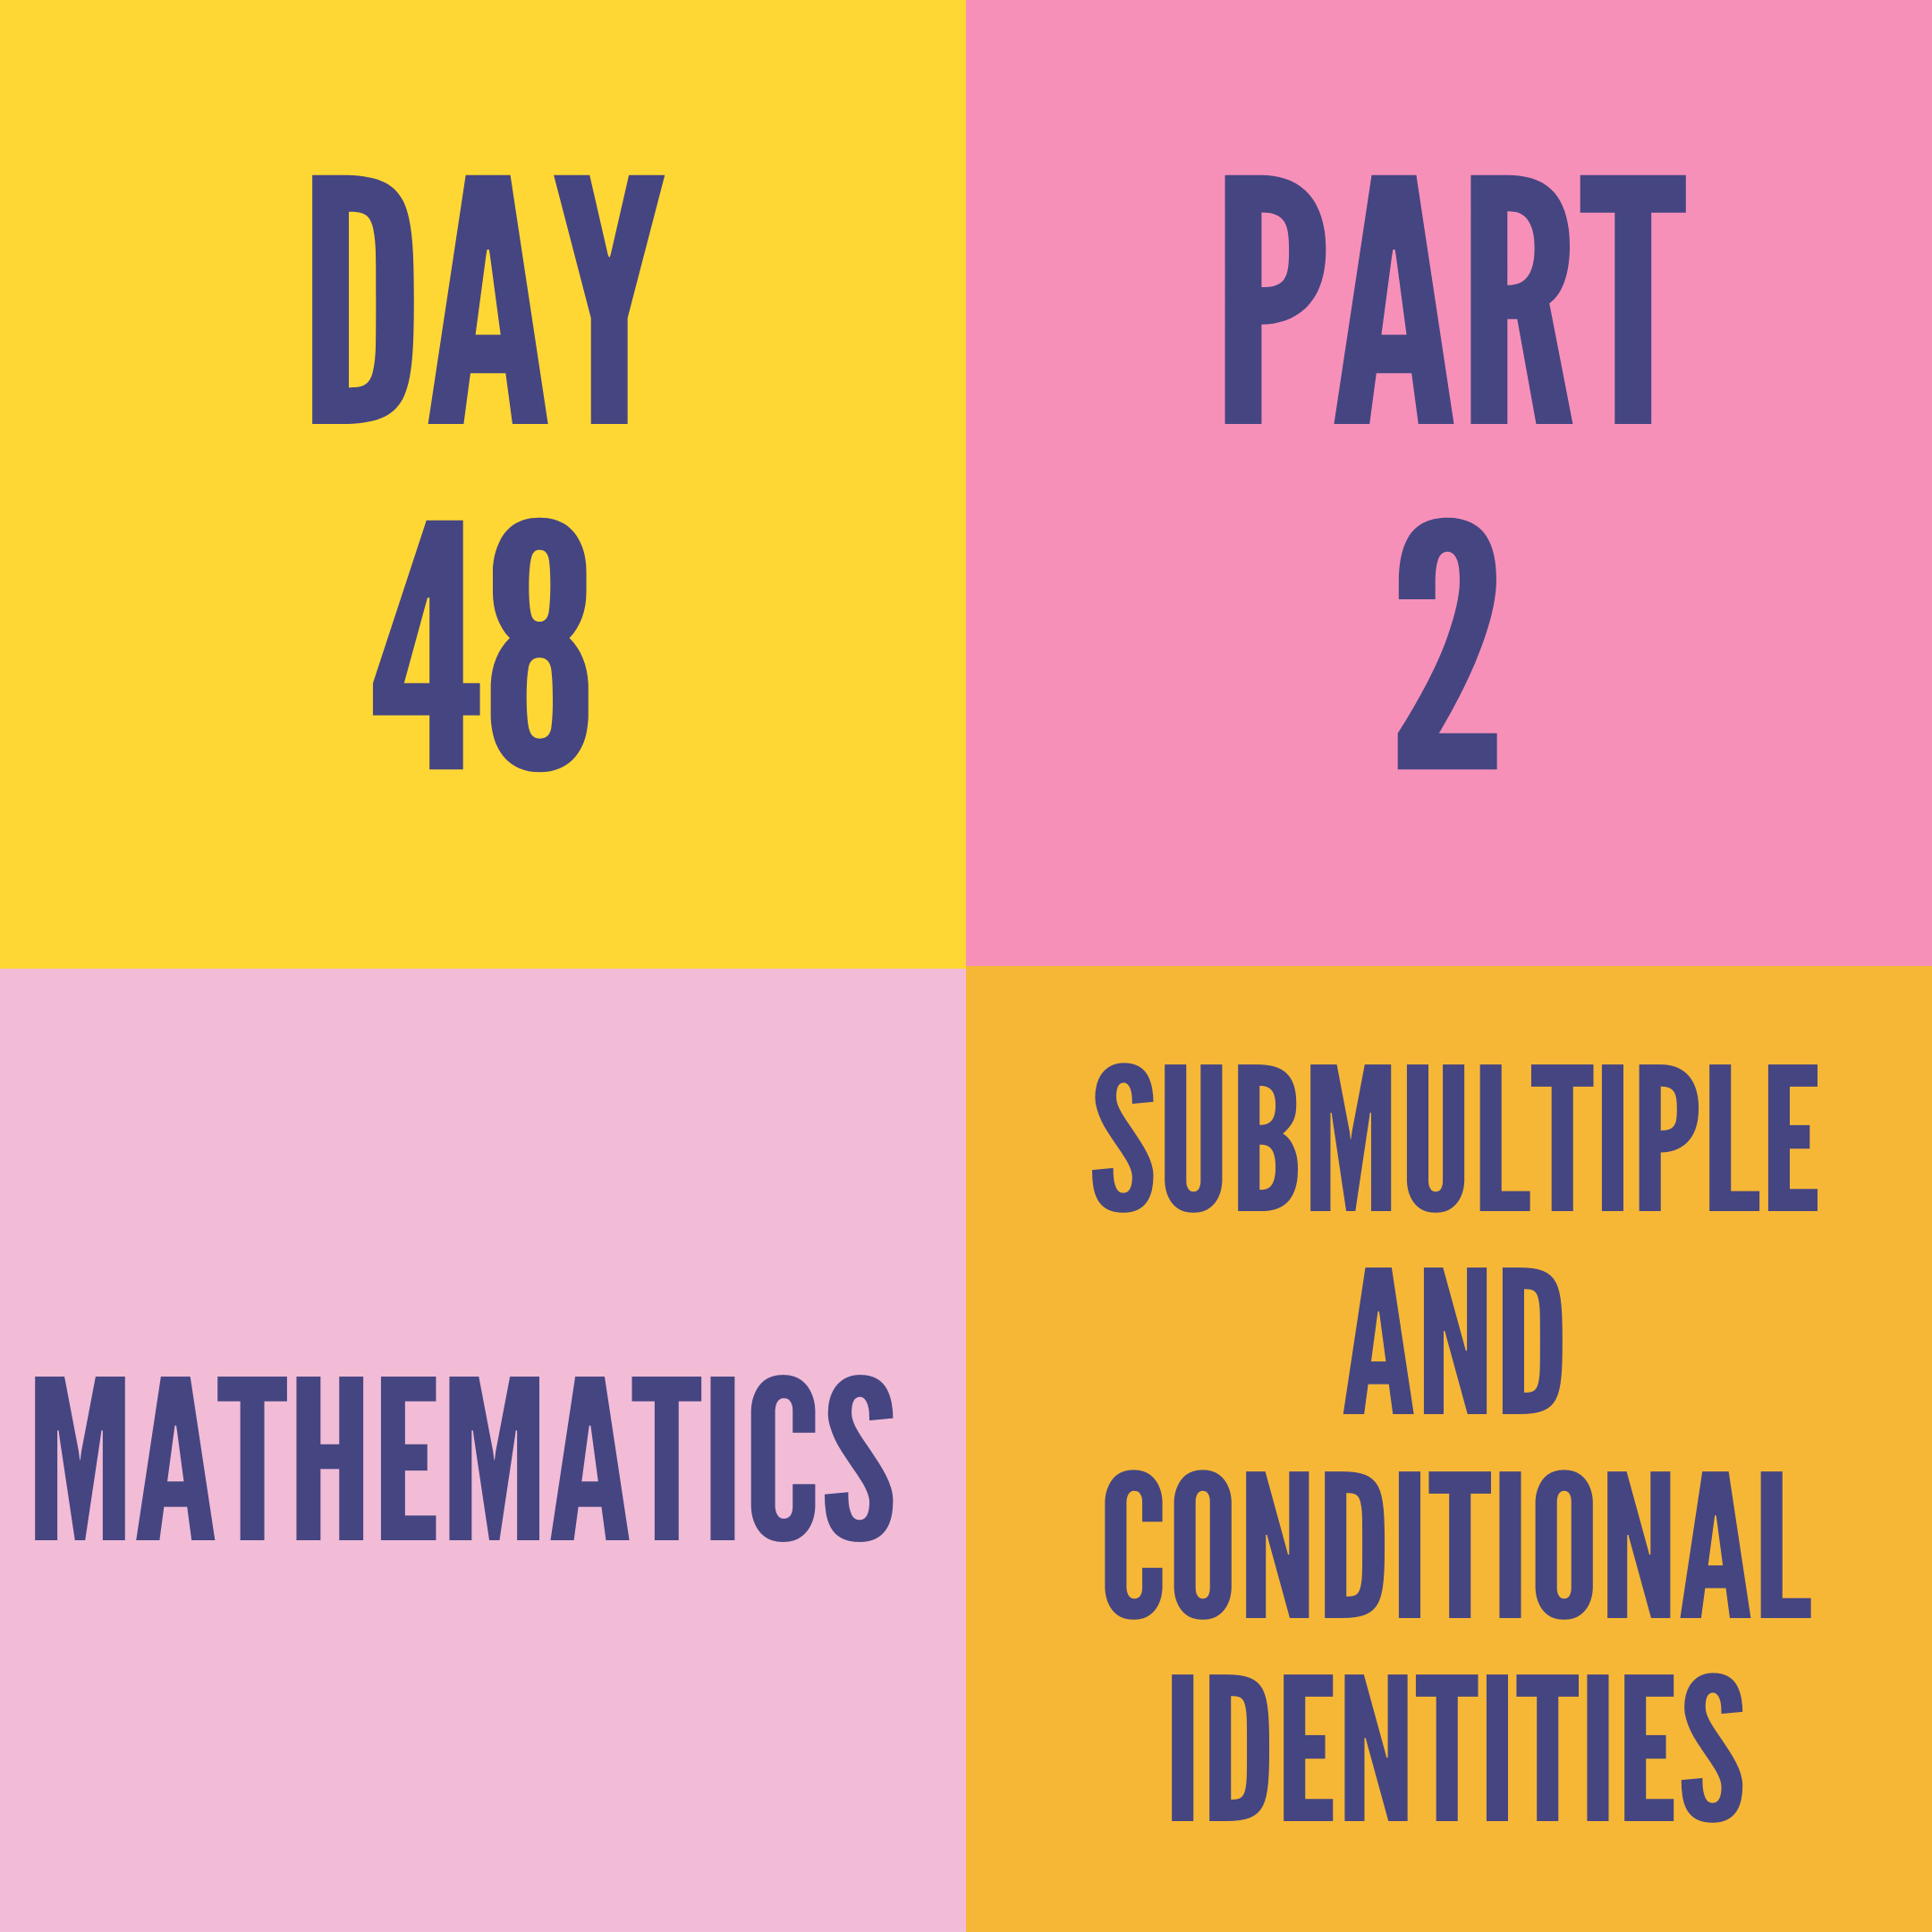 DAY-48 PART-2 SUBMULTIPLE AND CONDITIONAL IDENTITIES